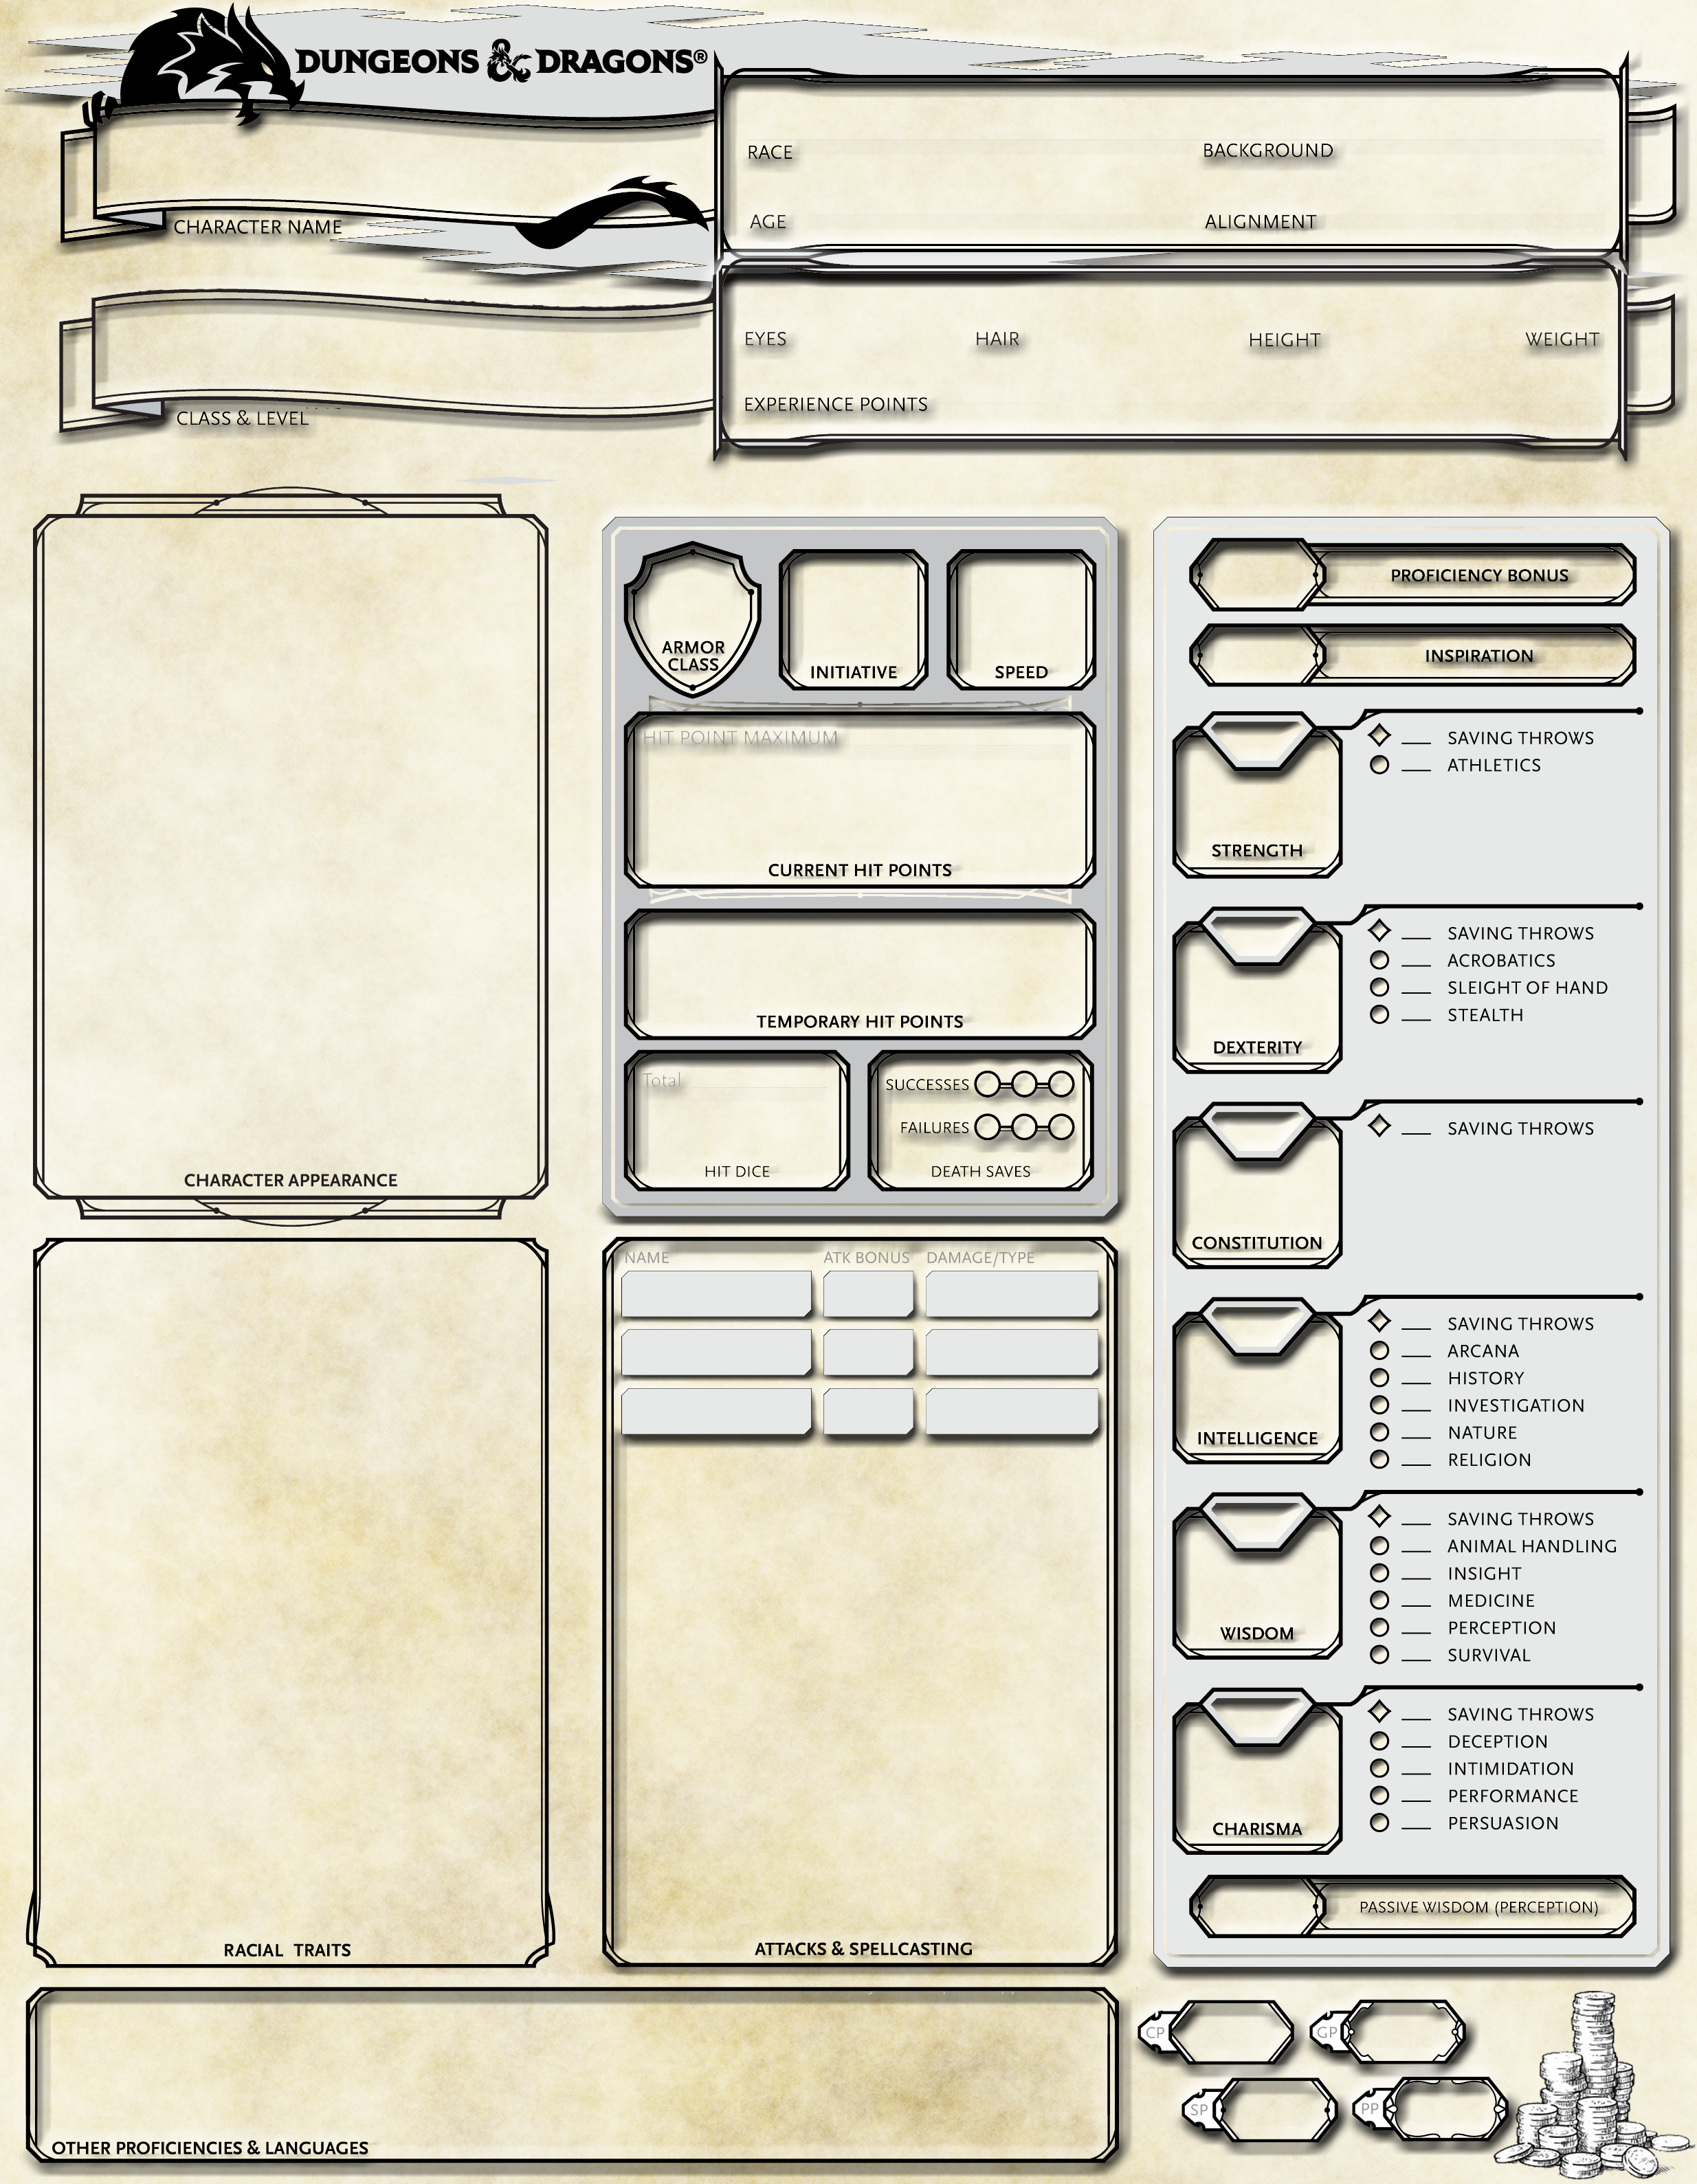 DND 5E custom Character sheet for Stats | My Homebrew DND